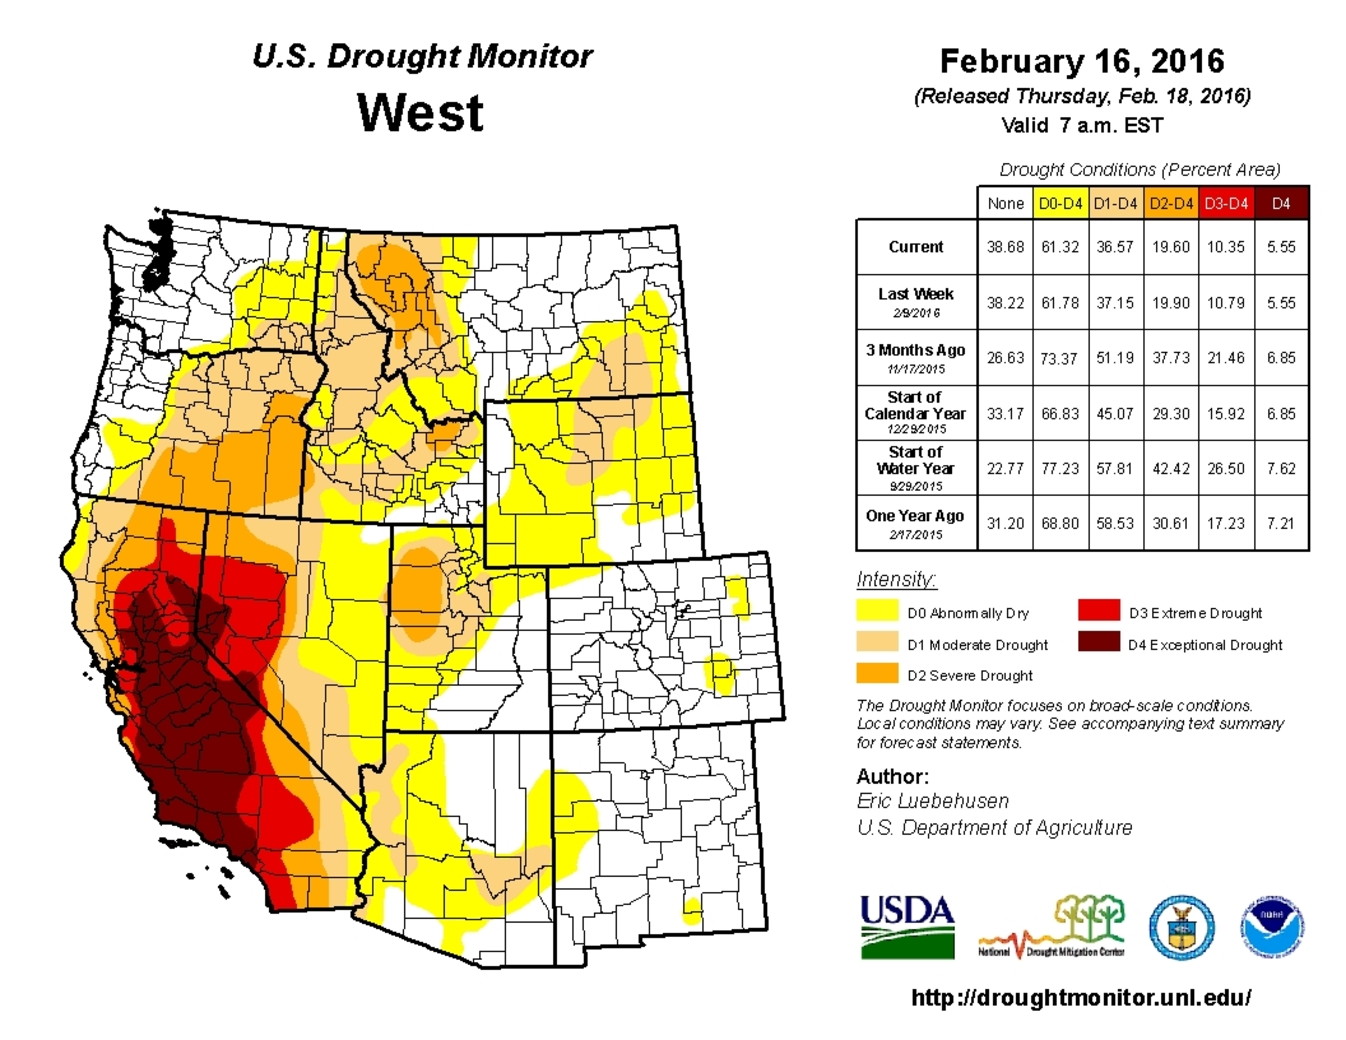 The California drought is continuing into its fifth year. - Image Credit: US Drought Monitor